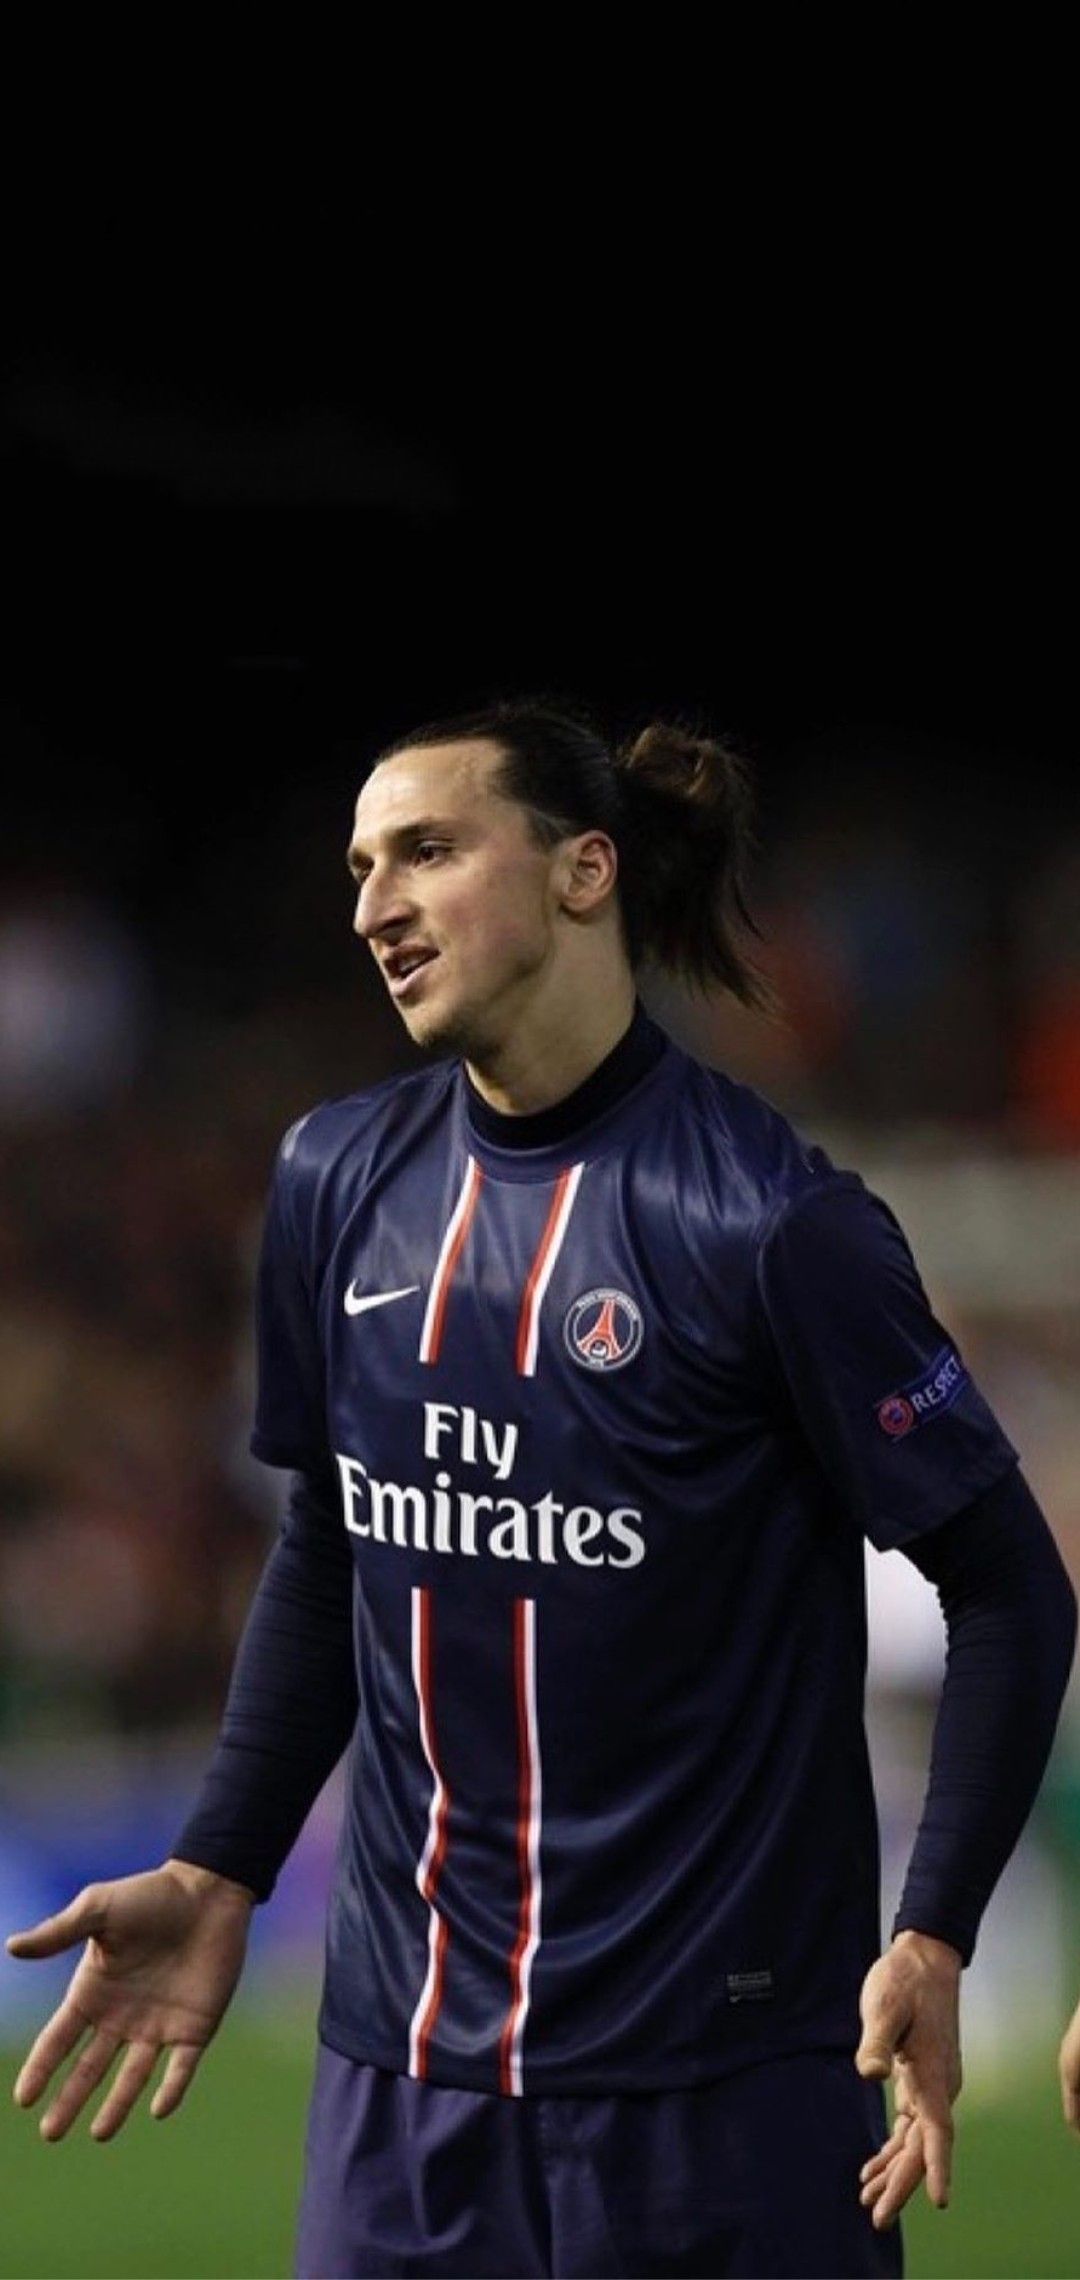 Pin by Shaunak on PSG in 2020 Sports, Football